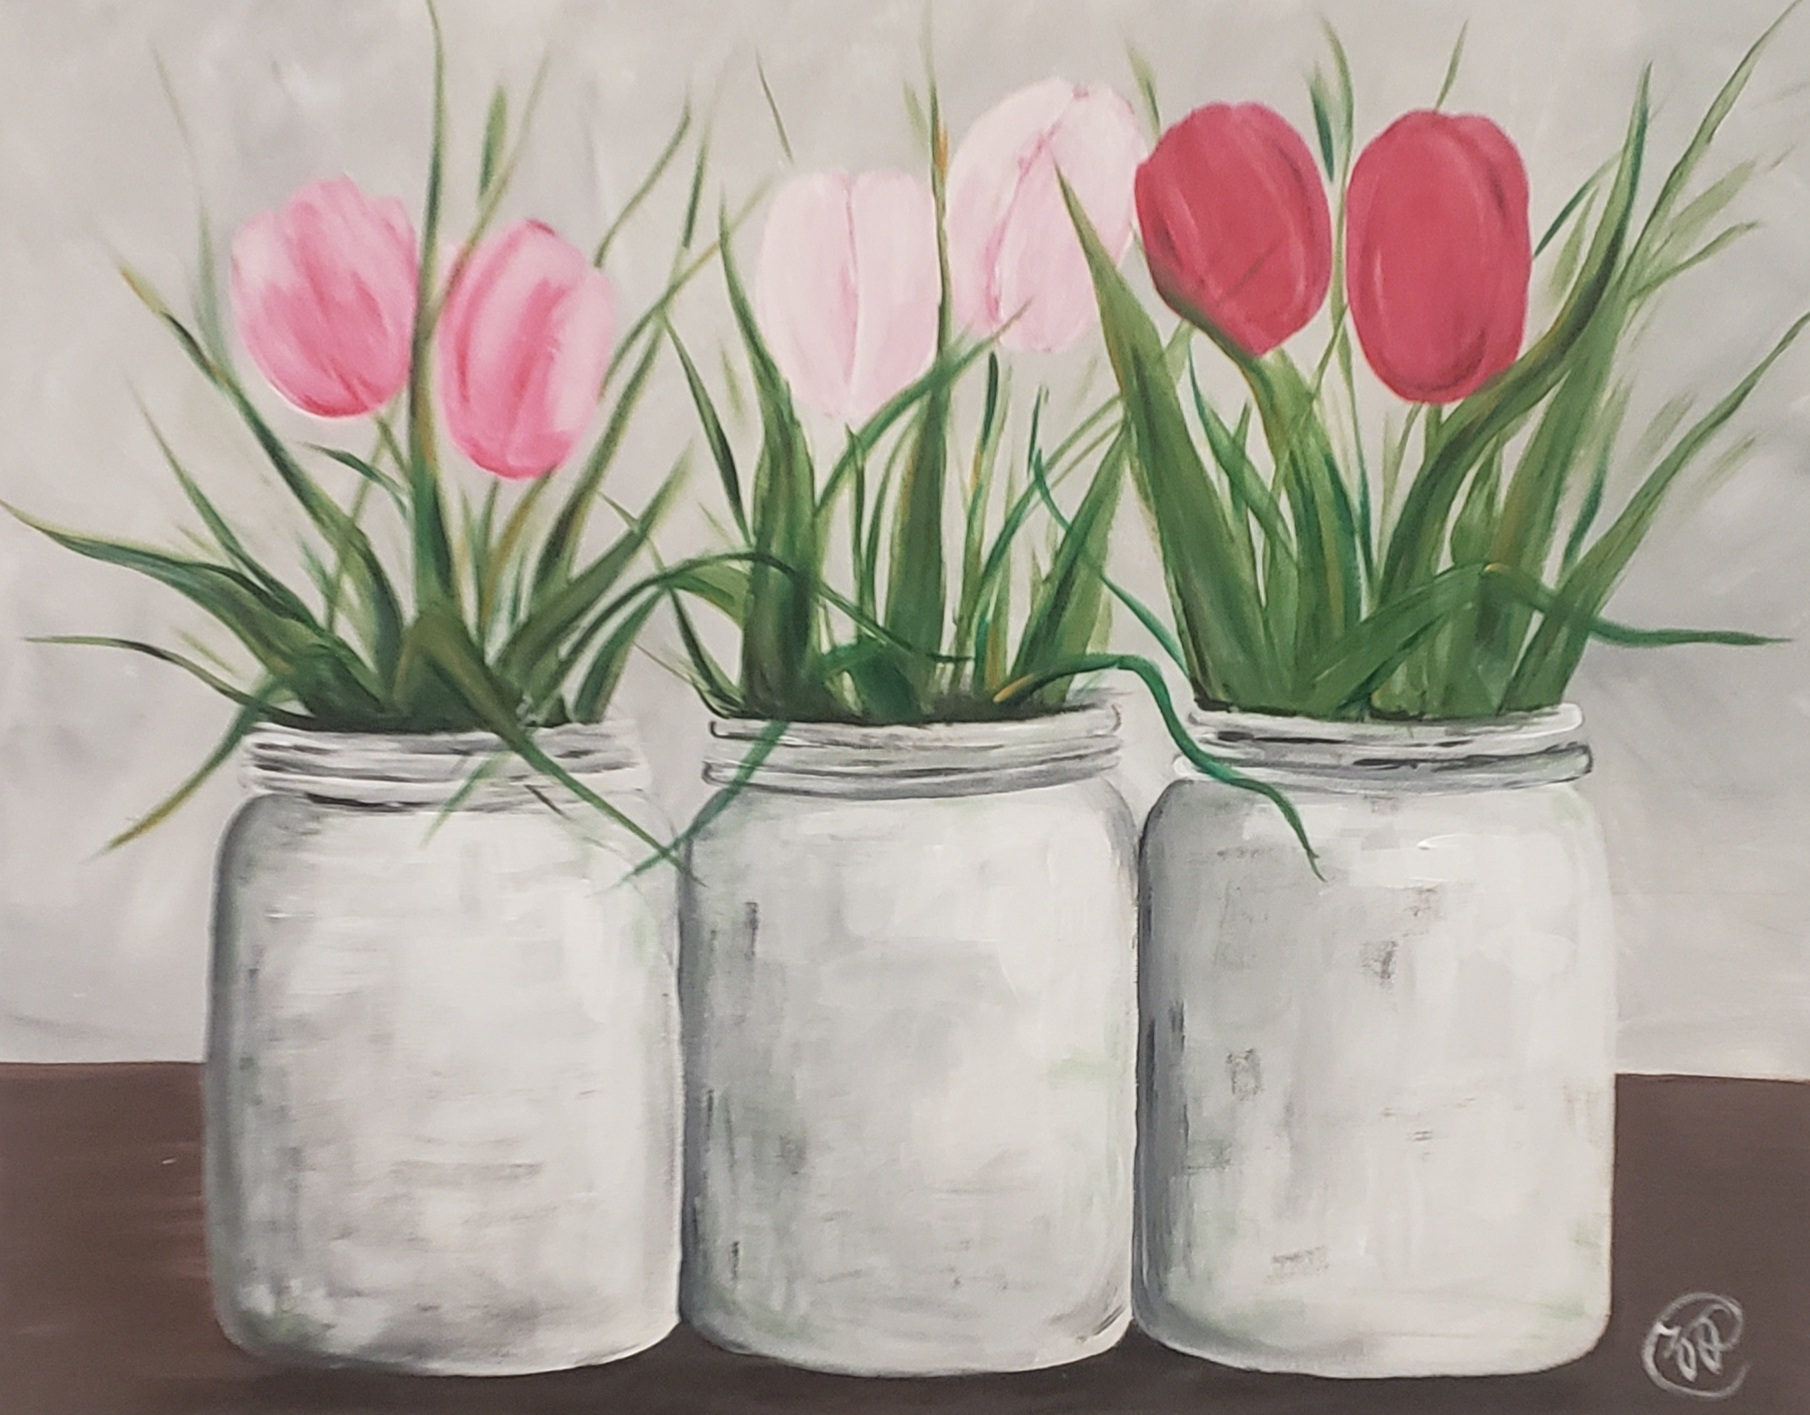 2 Tickets Left! Mother's Day Event: Spring Mason Jars